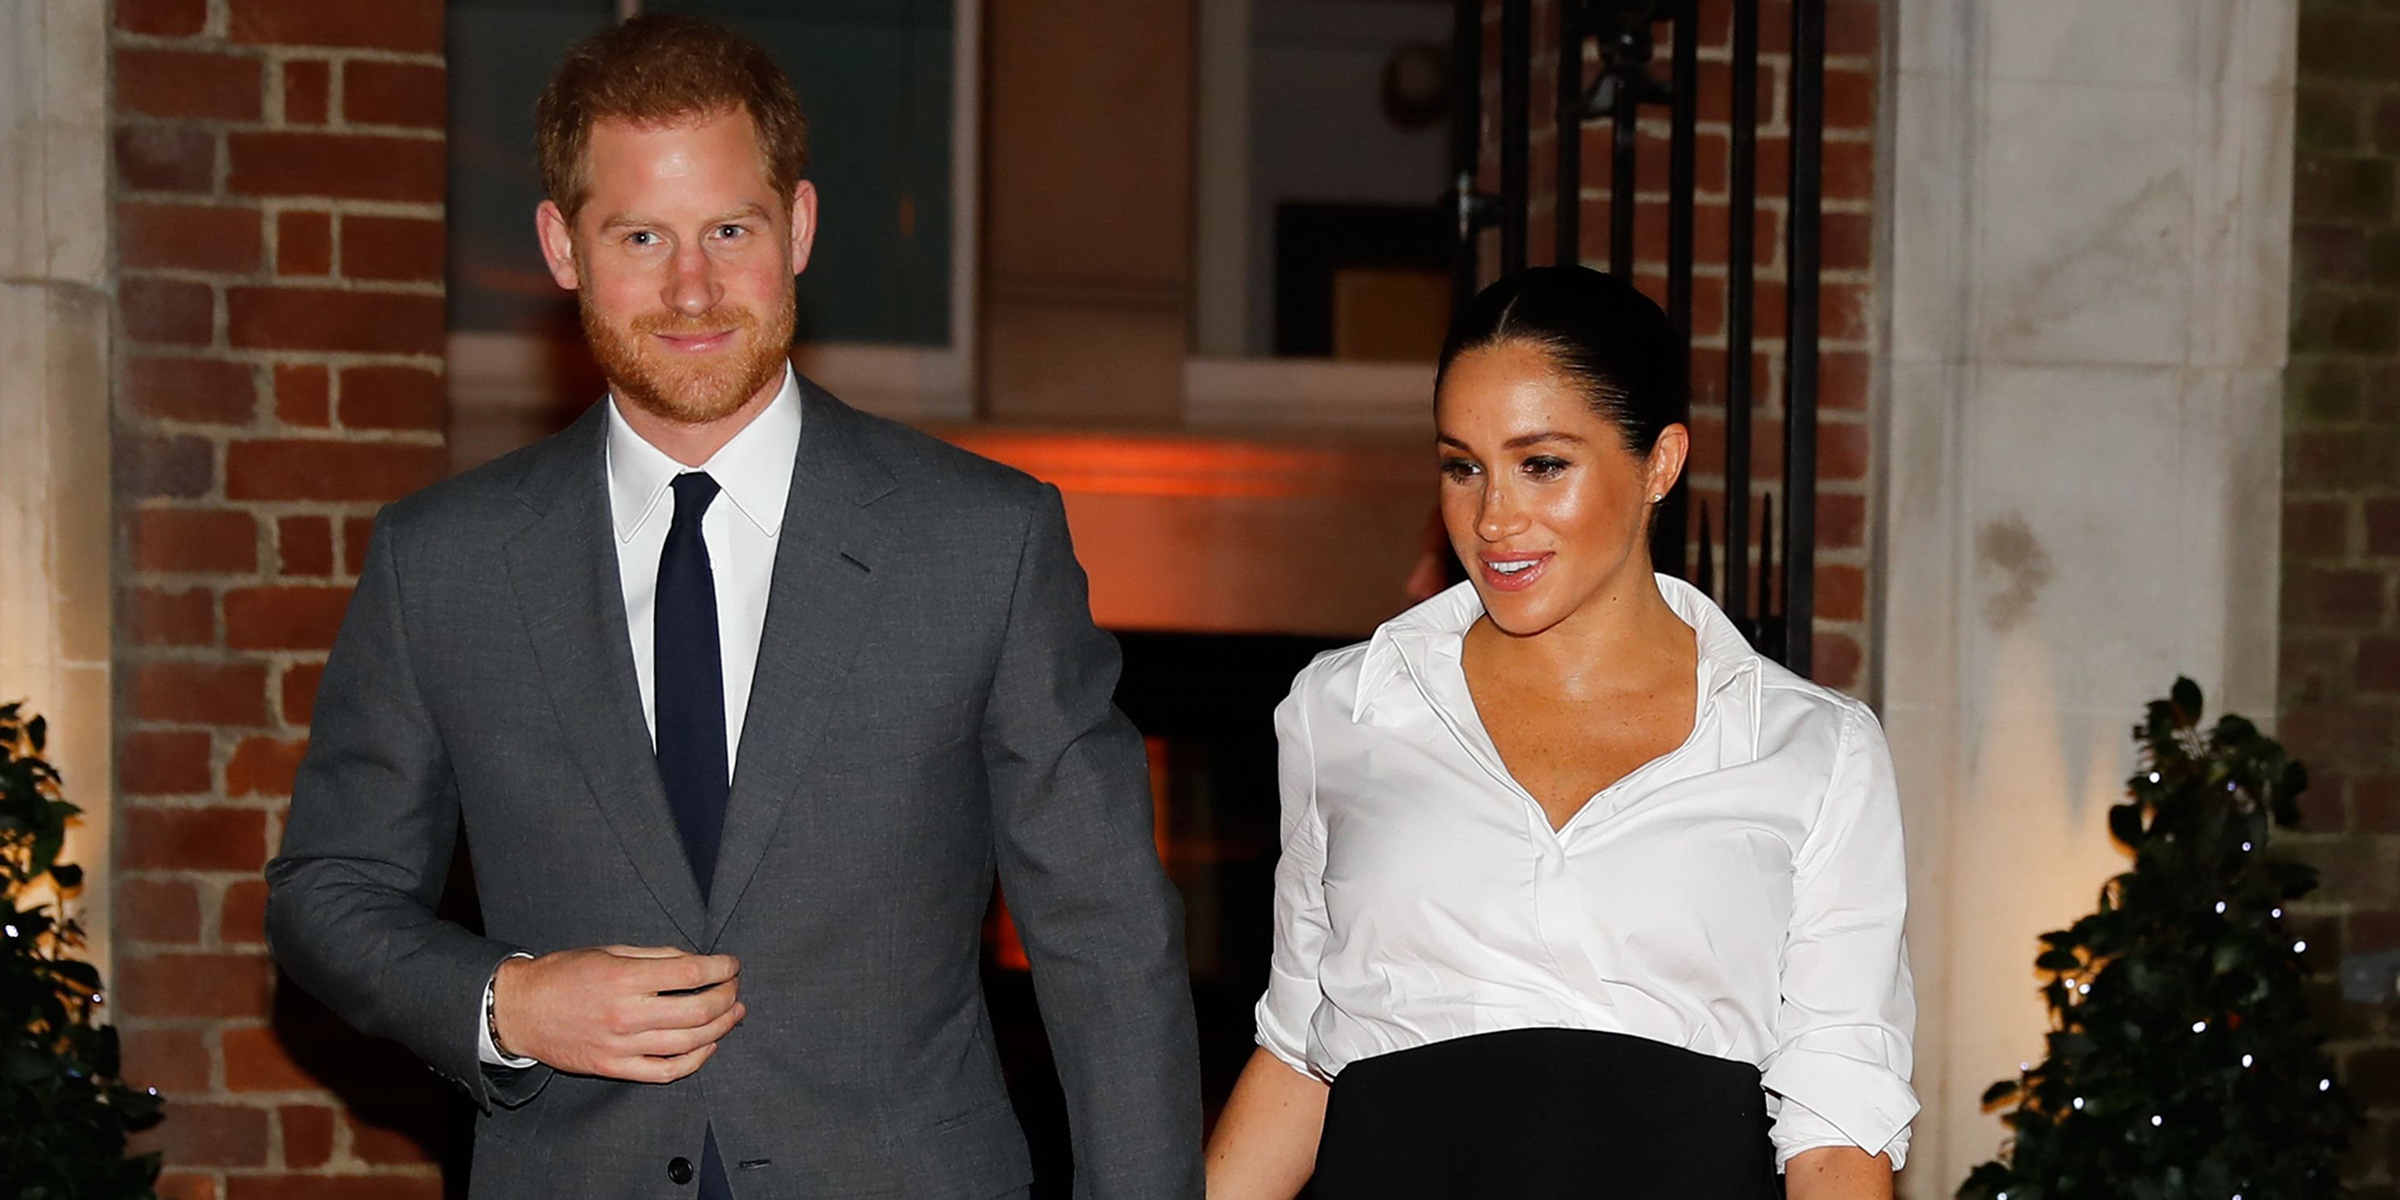 Meghan Markle dazzles in black-and-white Givenchy look — see the photos!